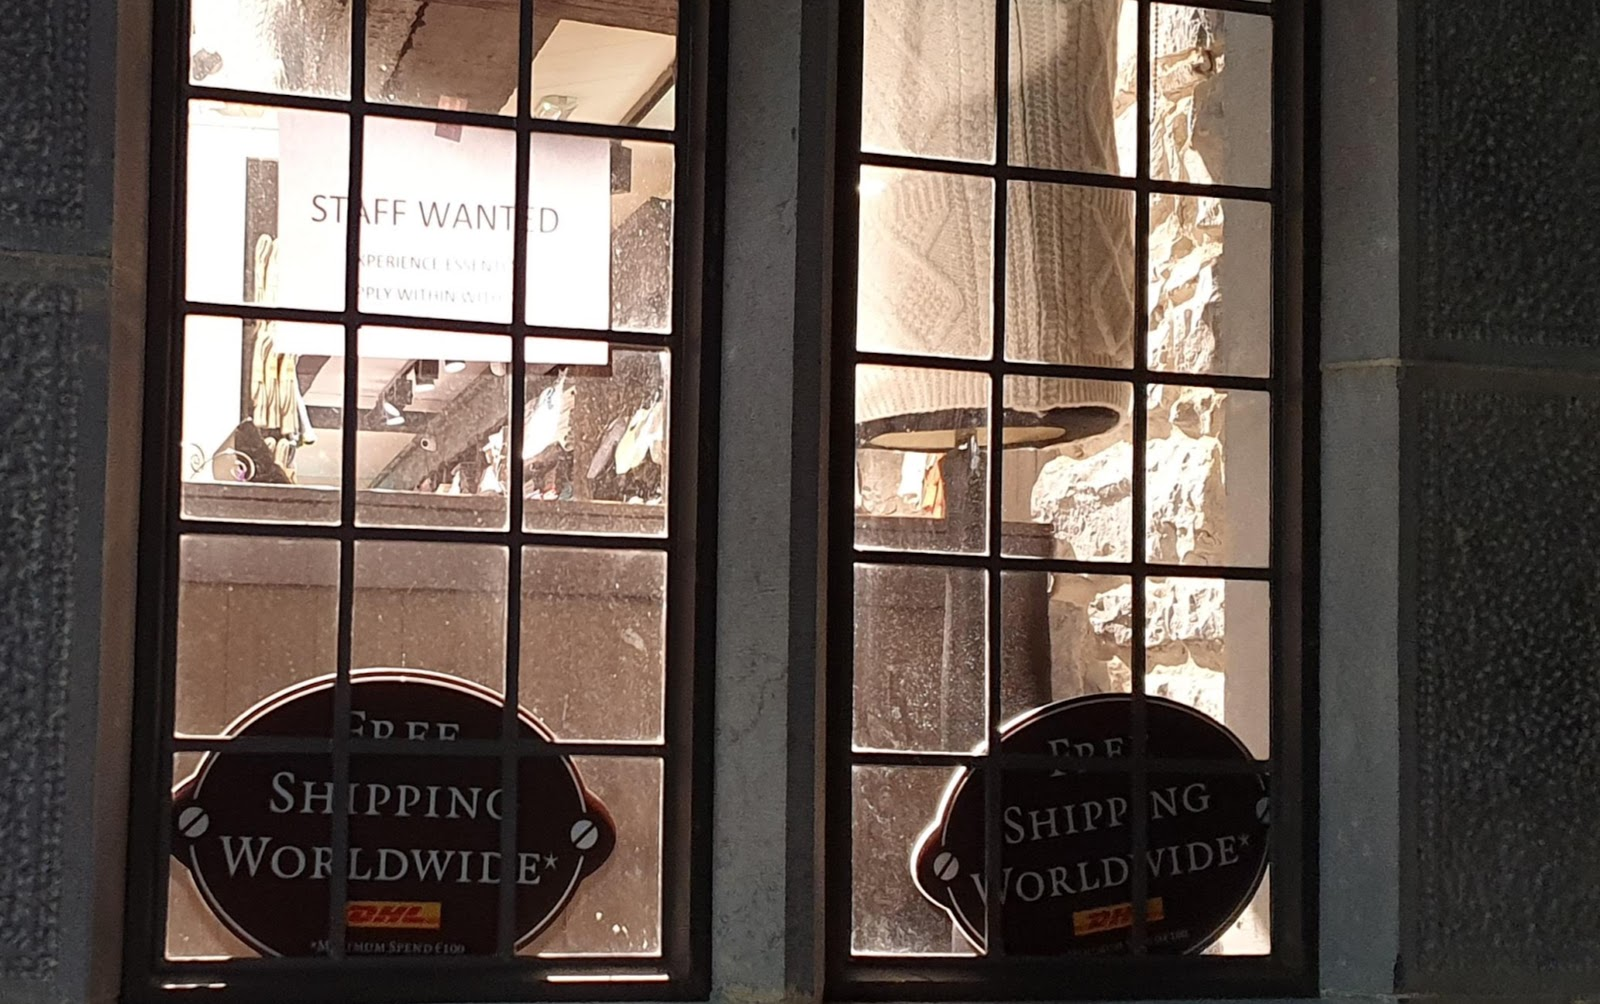 circular rugby-ball shaped free shipping worldwide signs in a shop with restored leaded glass and a staff-wanted sign